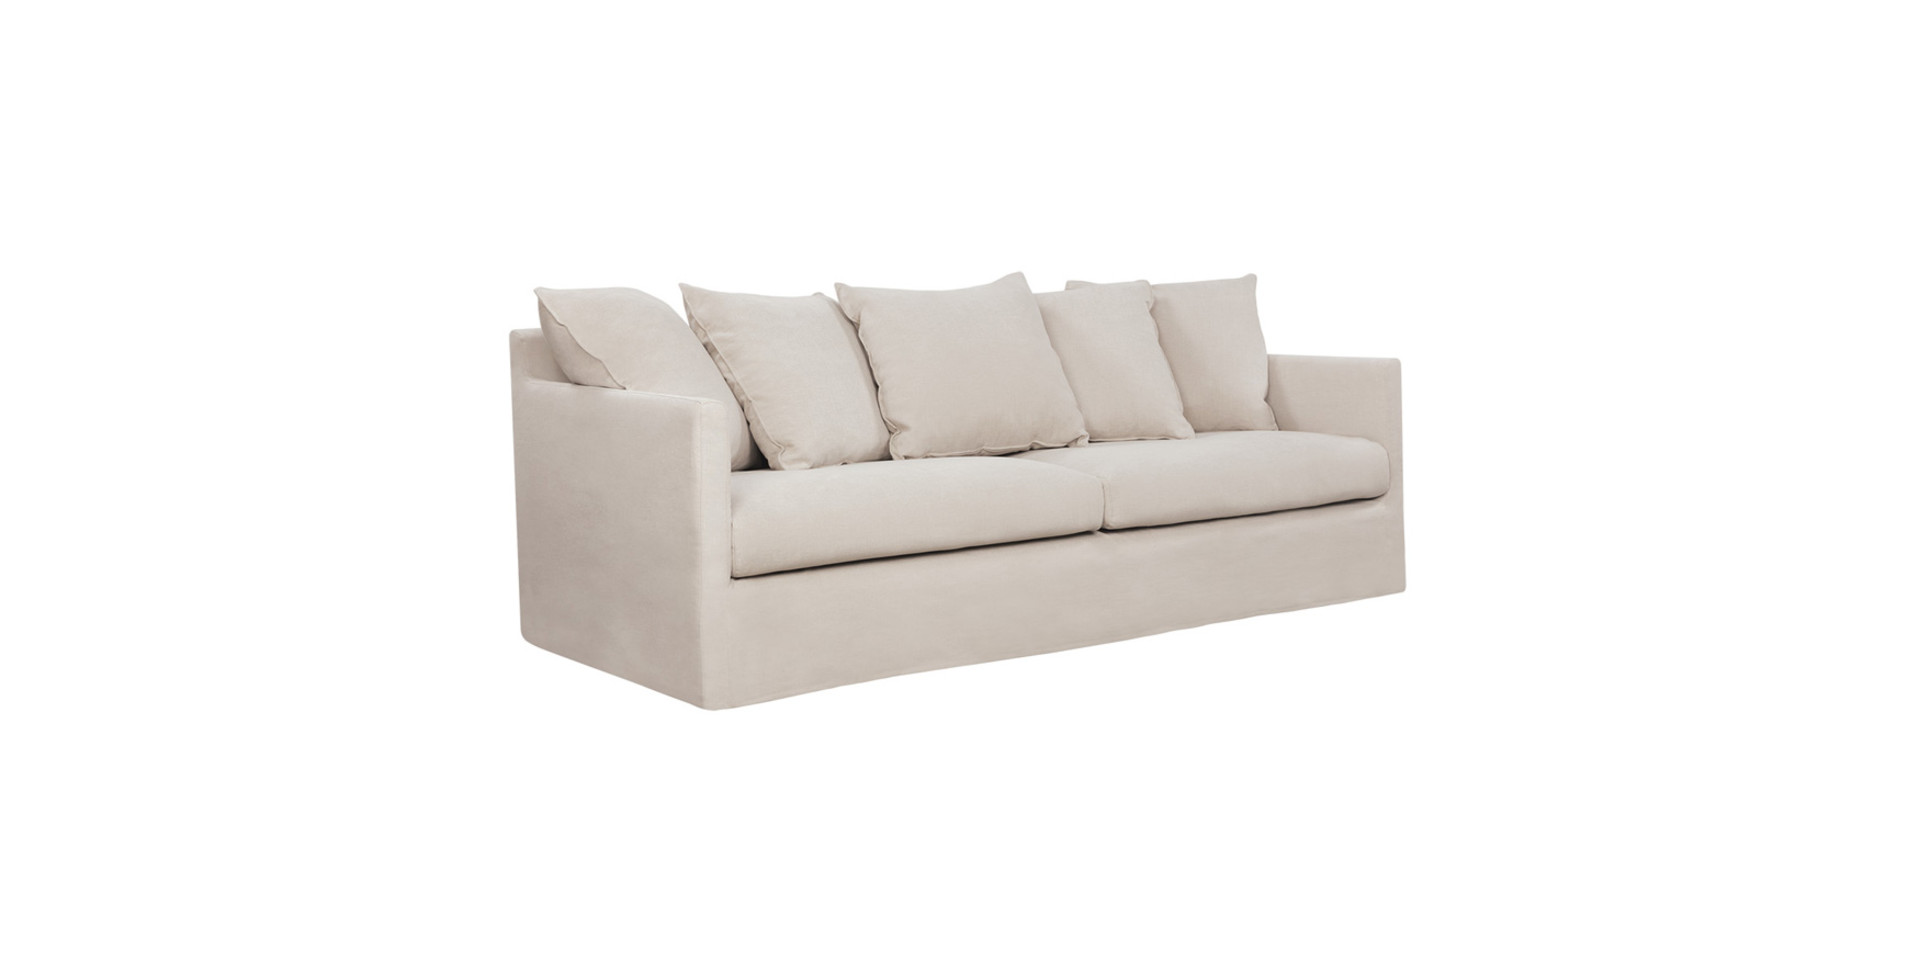 SALLY_3seater_small_cushions_caleido3790_light_beige_2_0